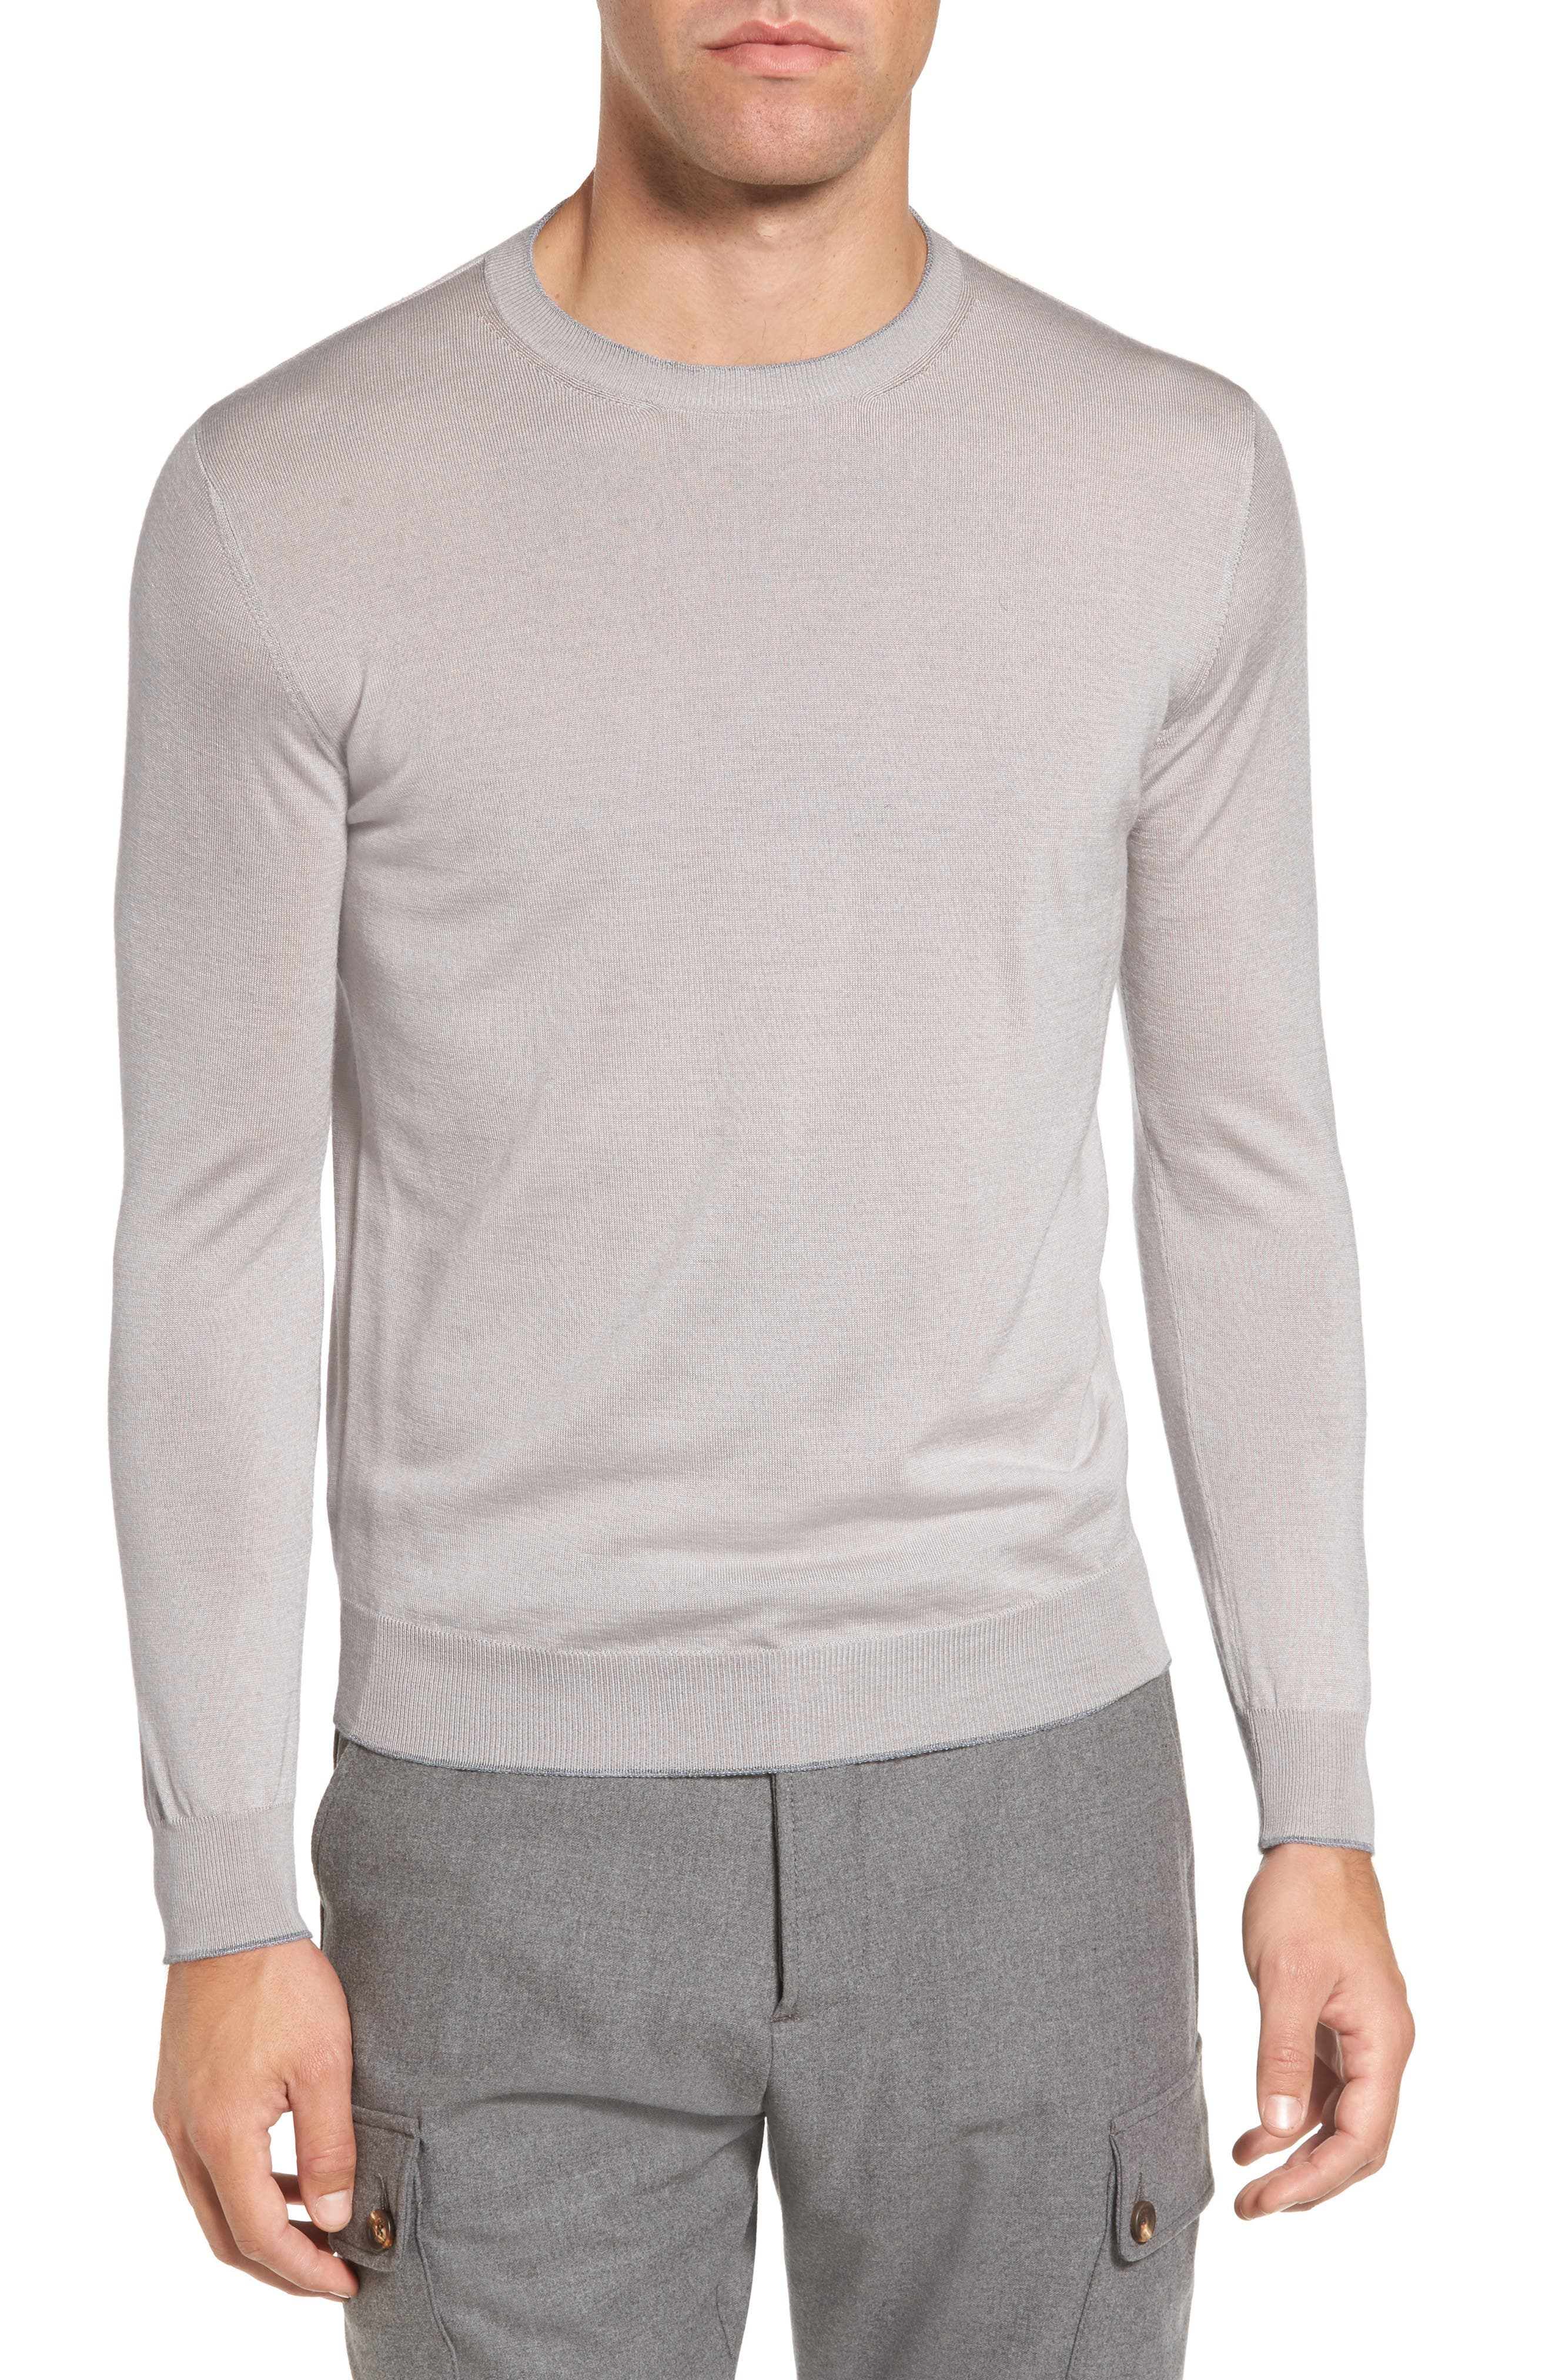 Tipped with subtle contrast, a crewneck sweater in a slim-fitting profile feels ultraluxurious in a fine Italian knit of wool and silk. Style Name: Eleventy Merino Wool & Silk Tipped Sweater. Style Number: 5457758. Available in stores.